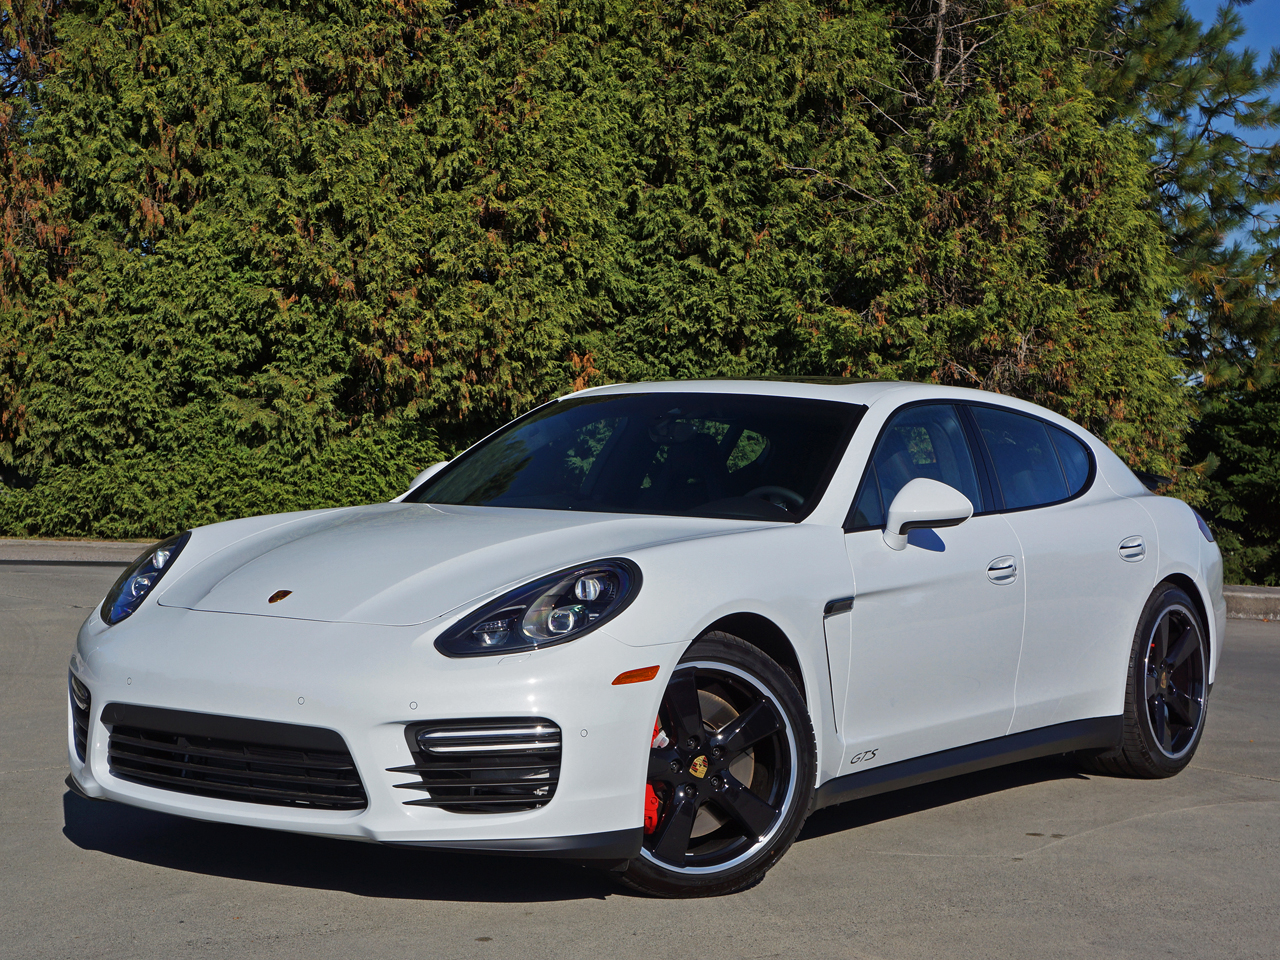 2016 porsche panamera gts road test review carcostcanada. Black Bedroom Furniture Sets. Home Design Ideas